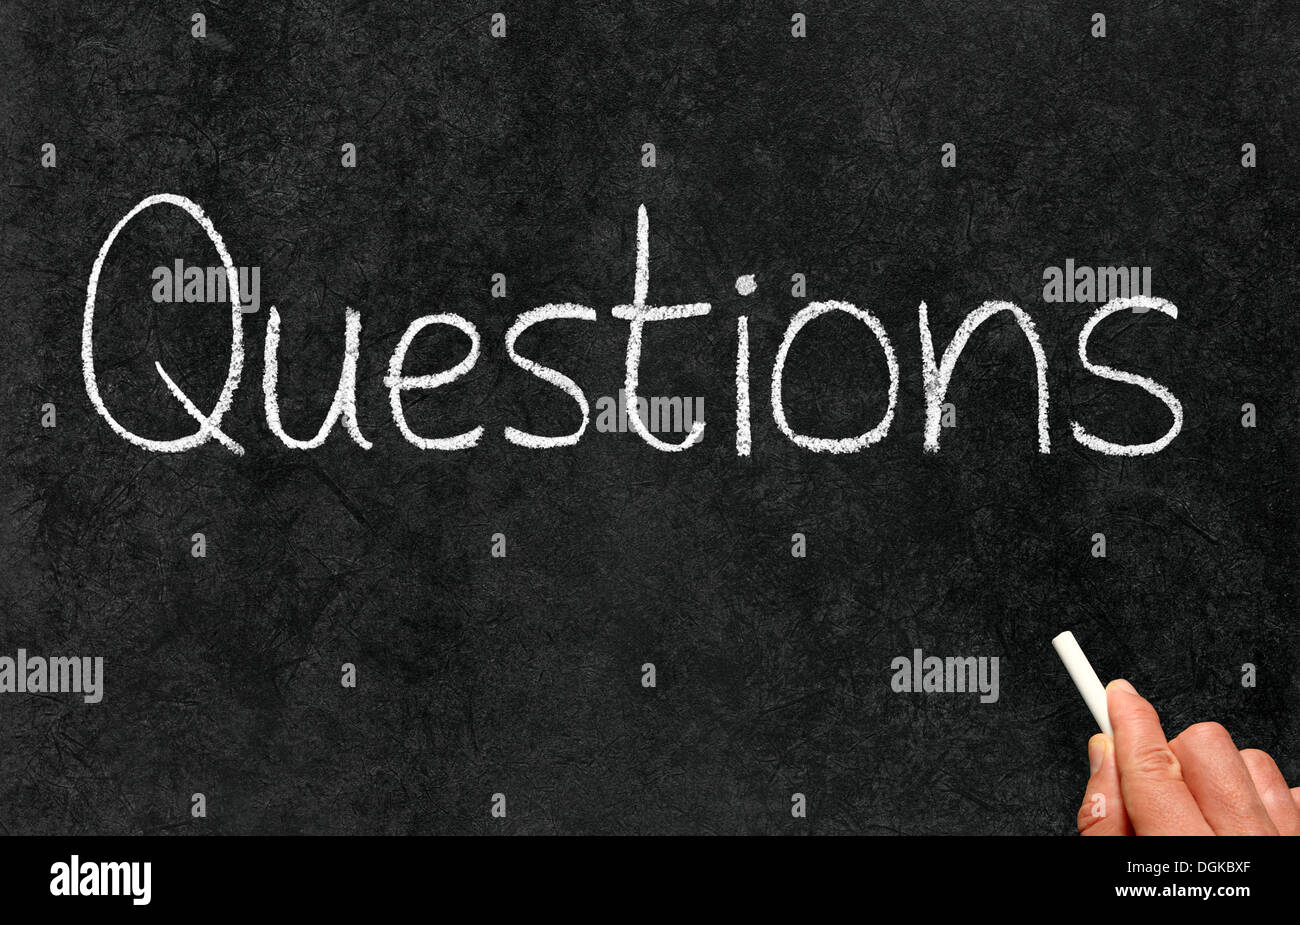 Questions word written with white chalk on a blackboard. - Stock Image